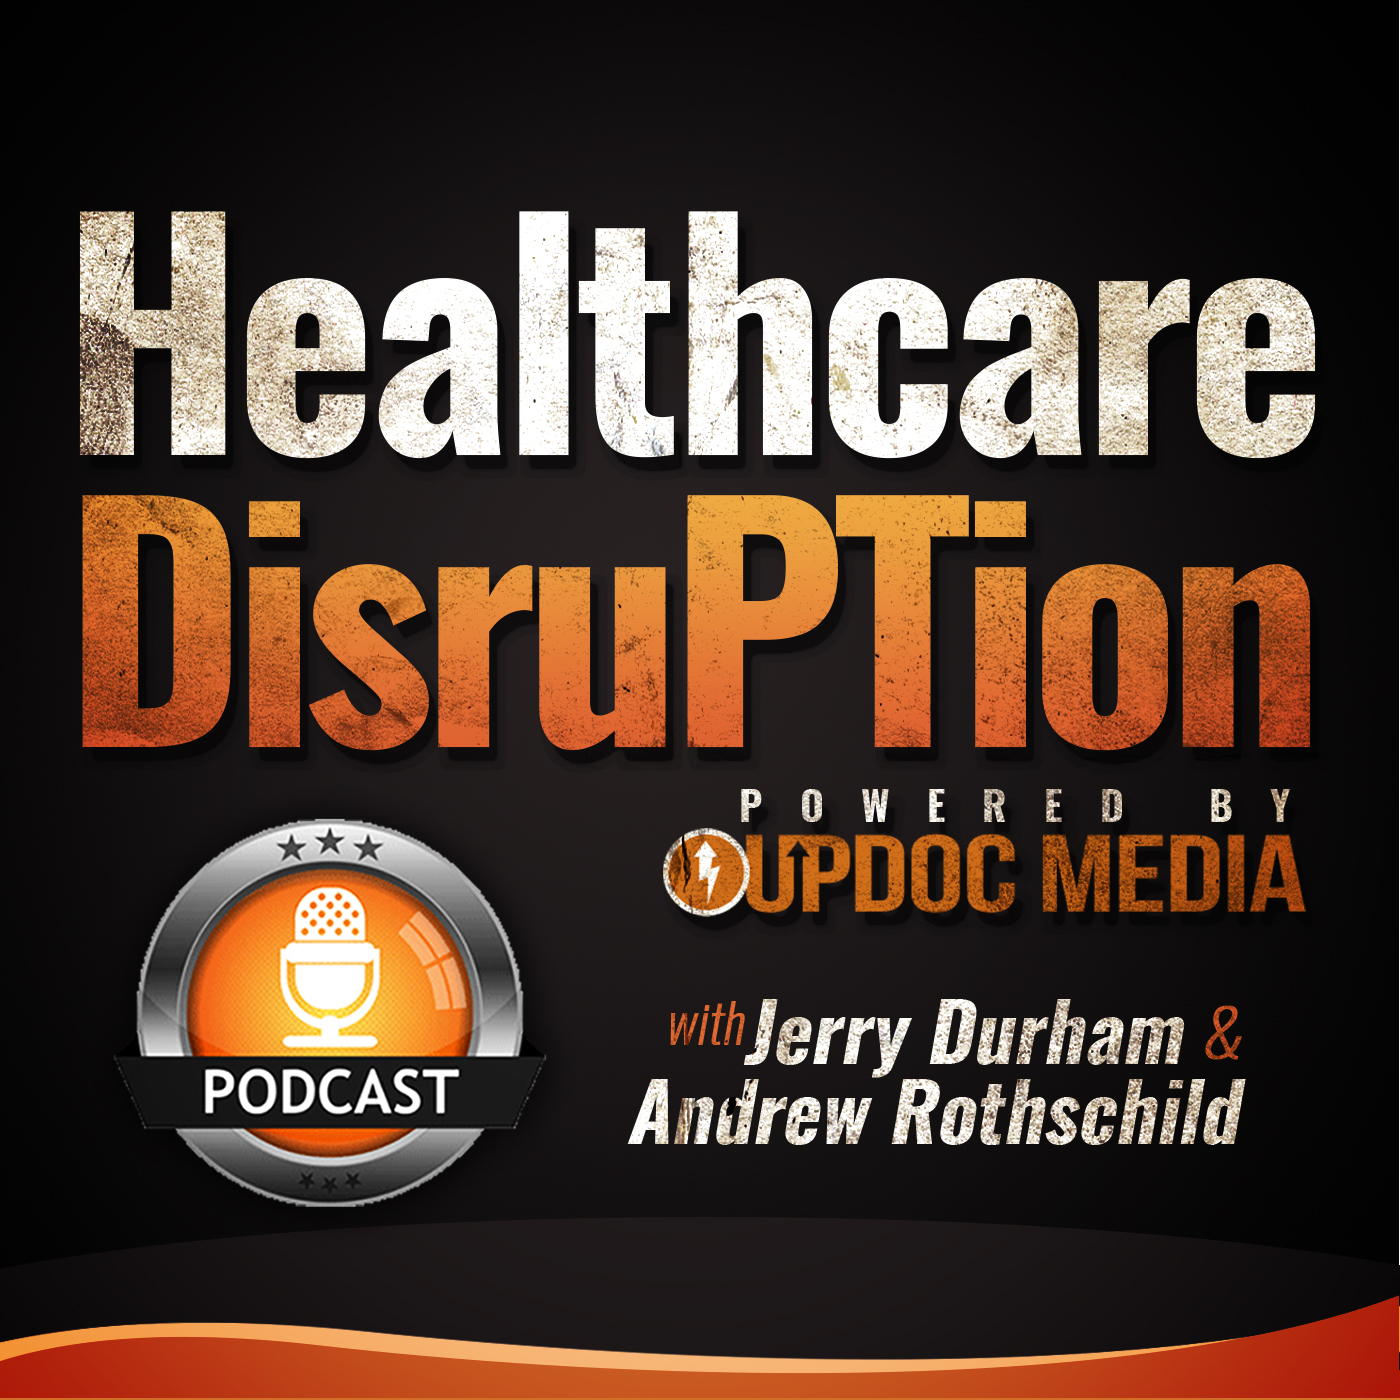 Healthcare DisruPTion 4 Interview Matt Watkinson Part 2